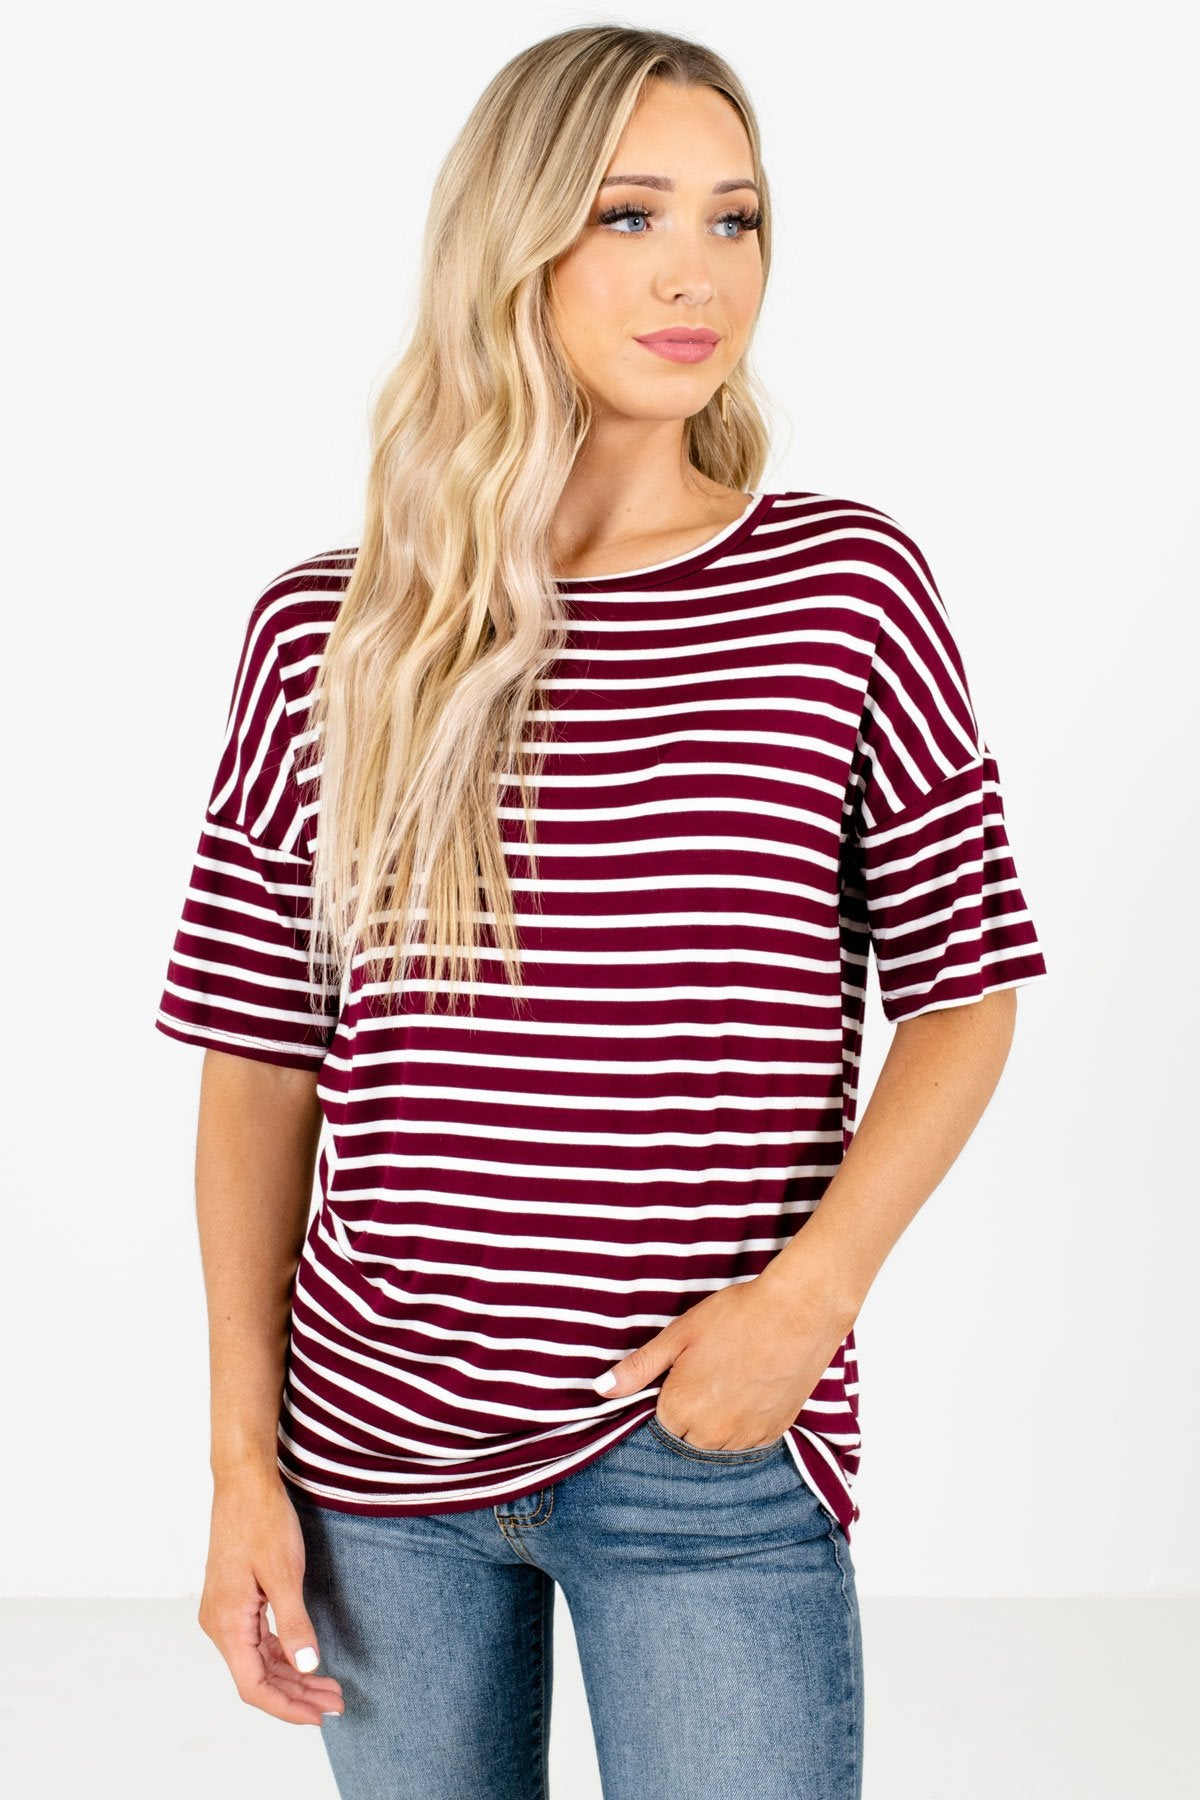 Burgundy and White Striped Boutique Tops for Women